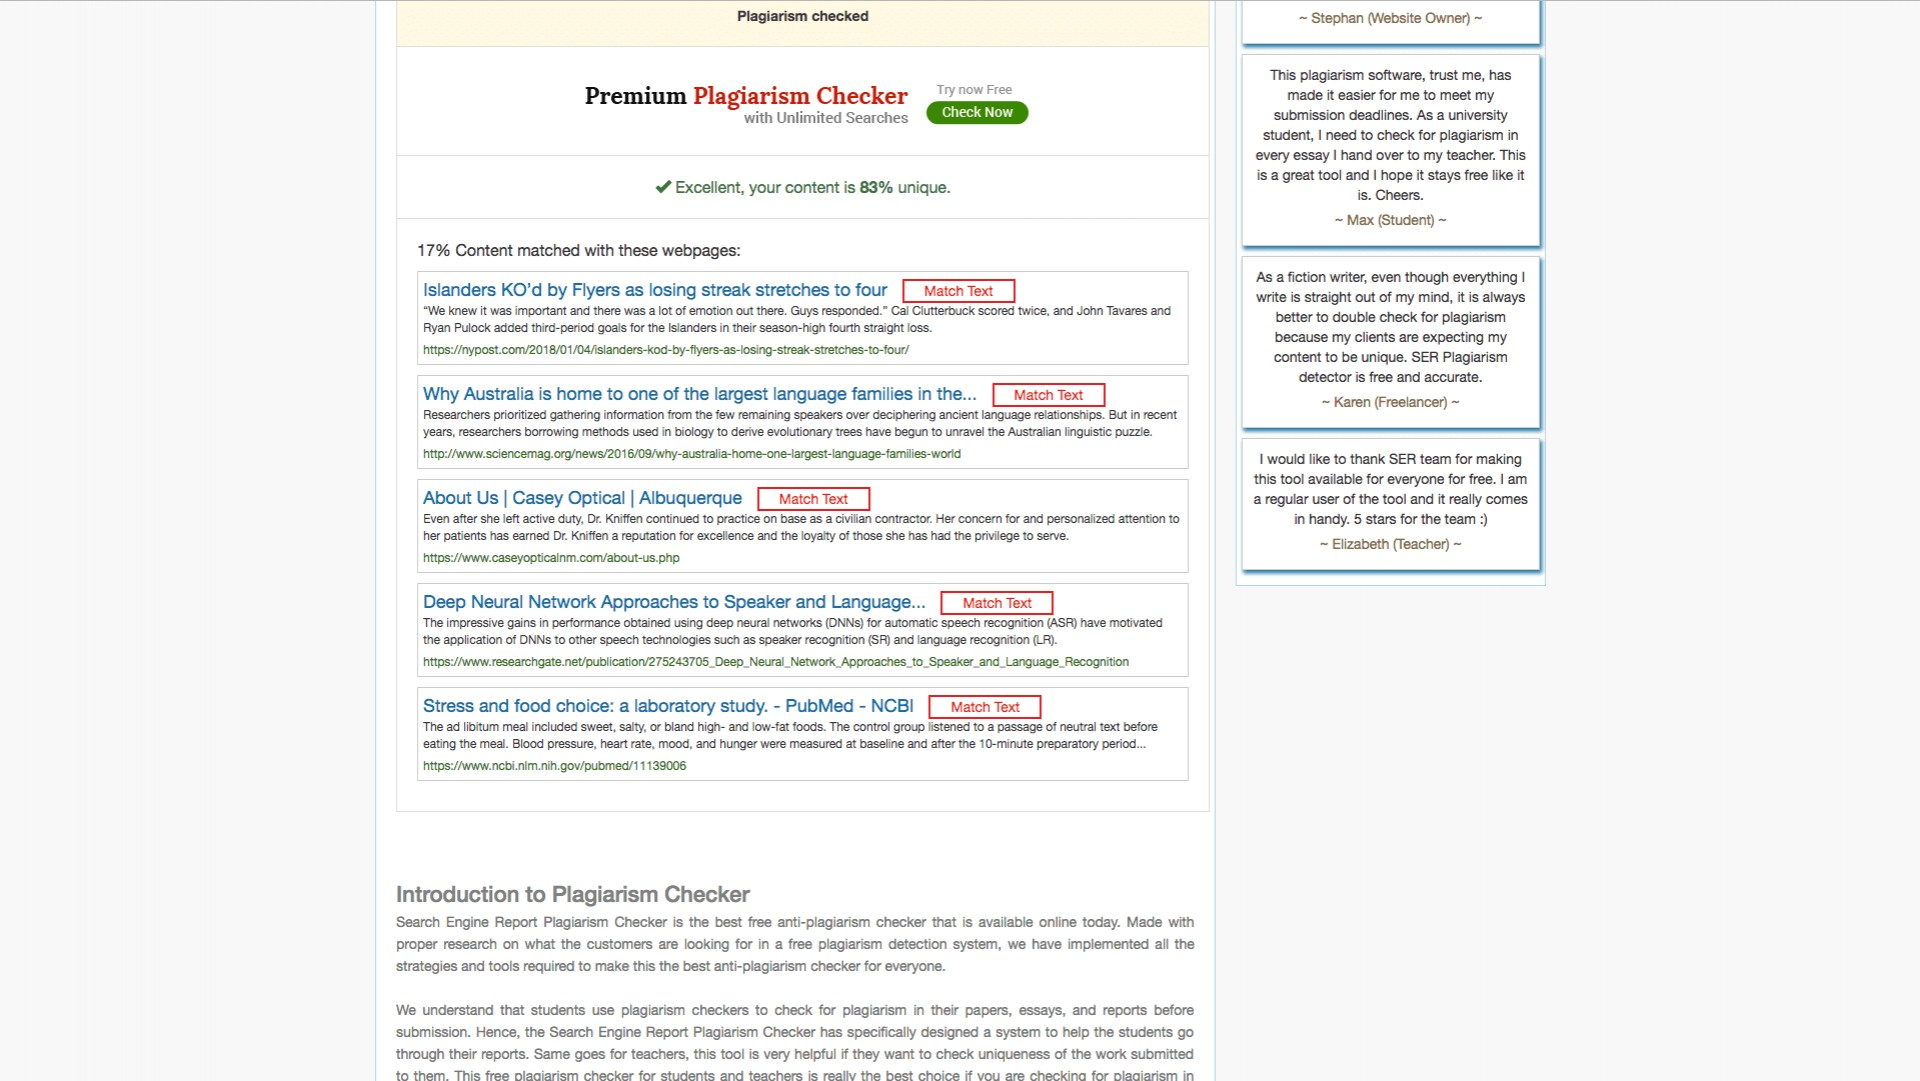 004 Research Paper Online Plagiarism Checker Outstanding Free Full Ieee 1920